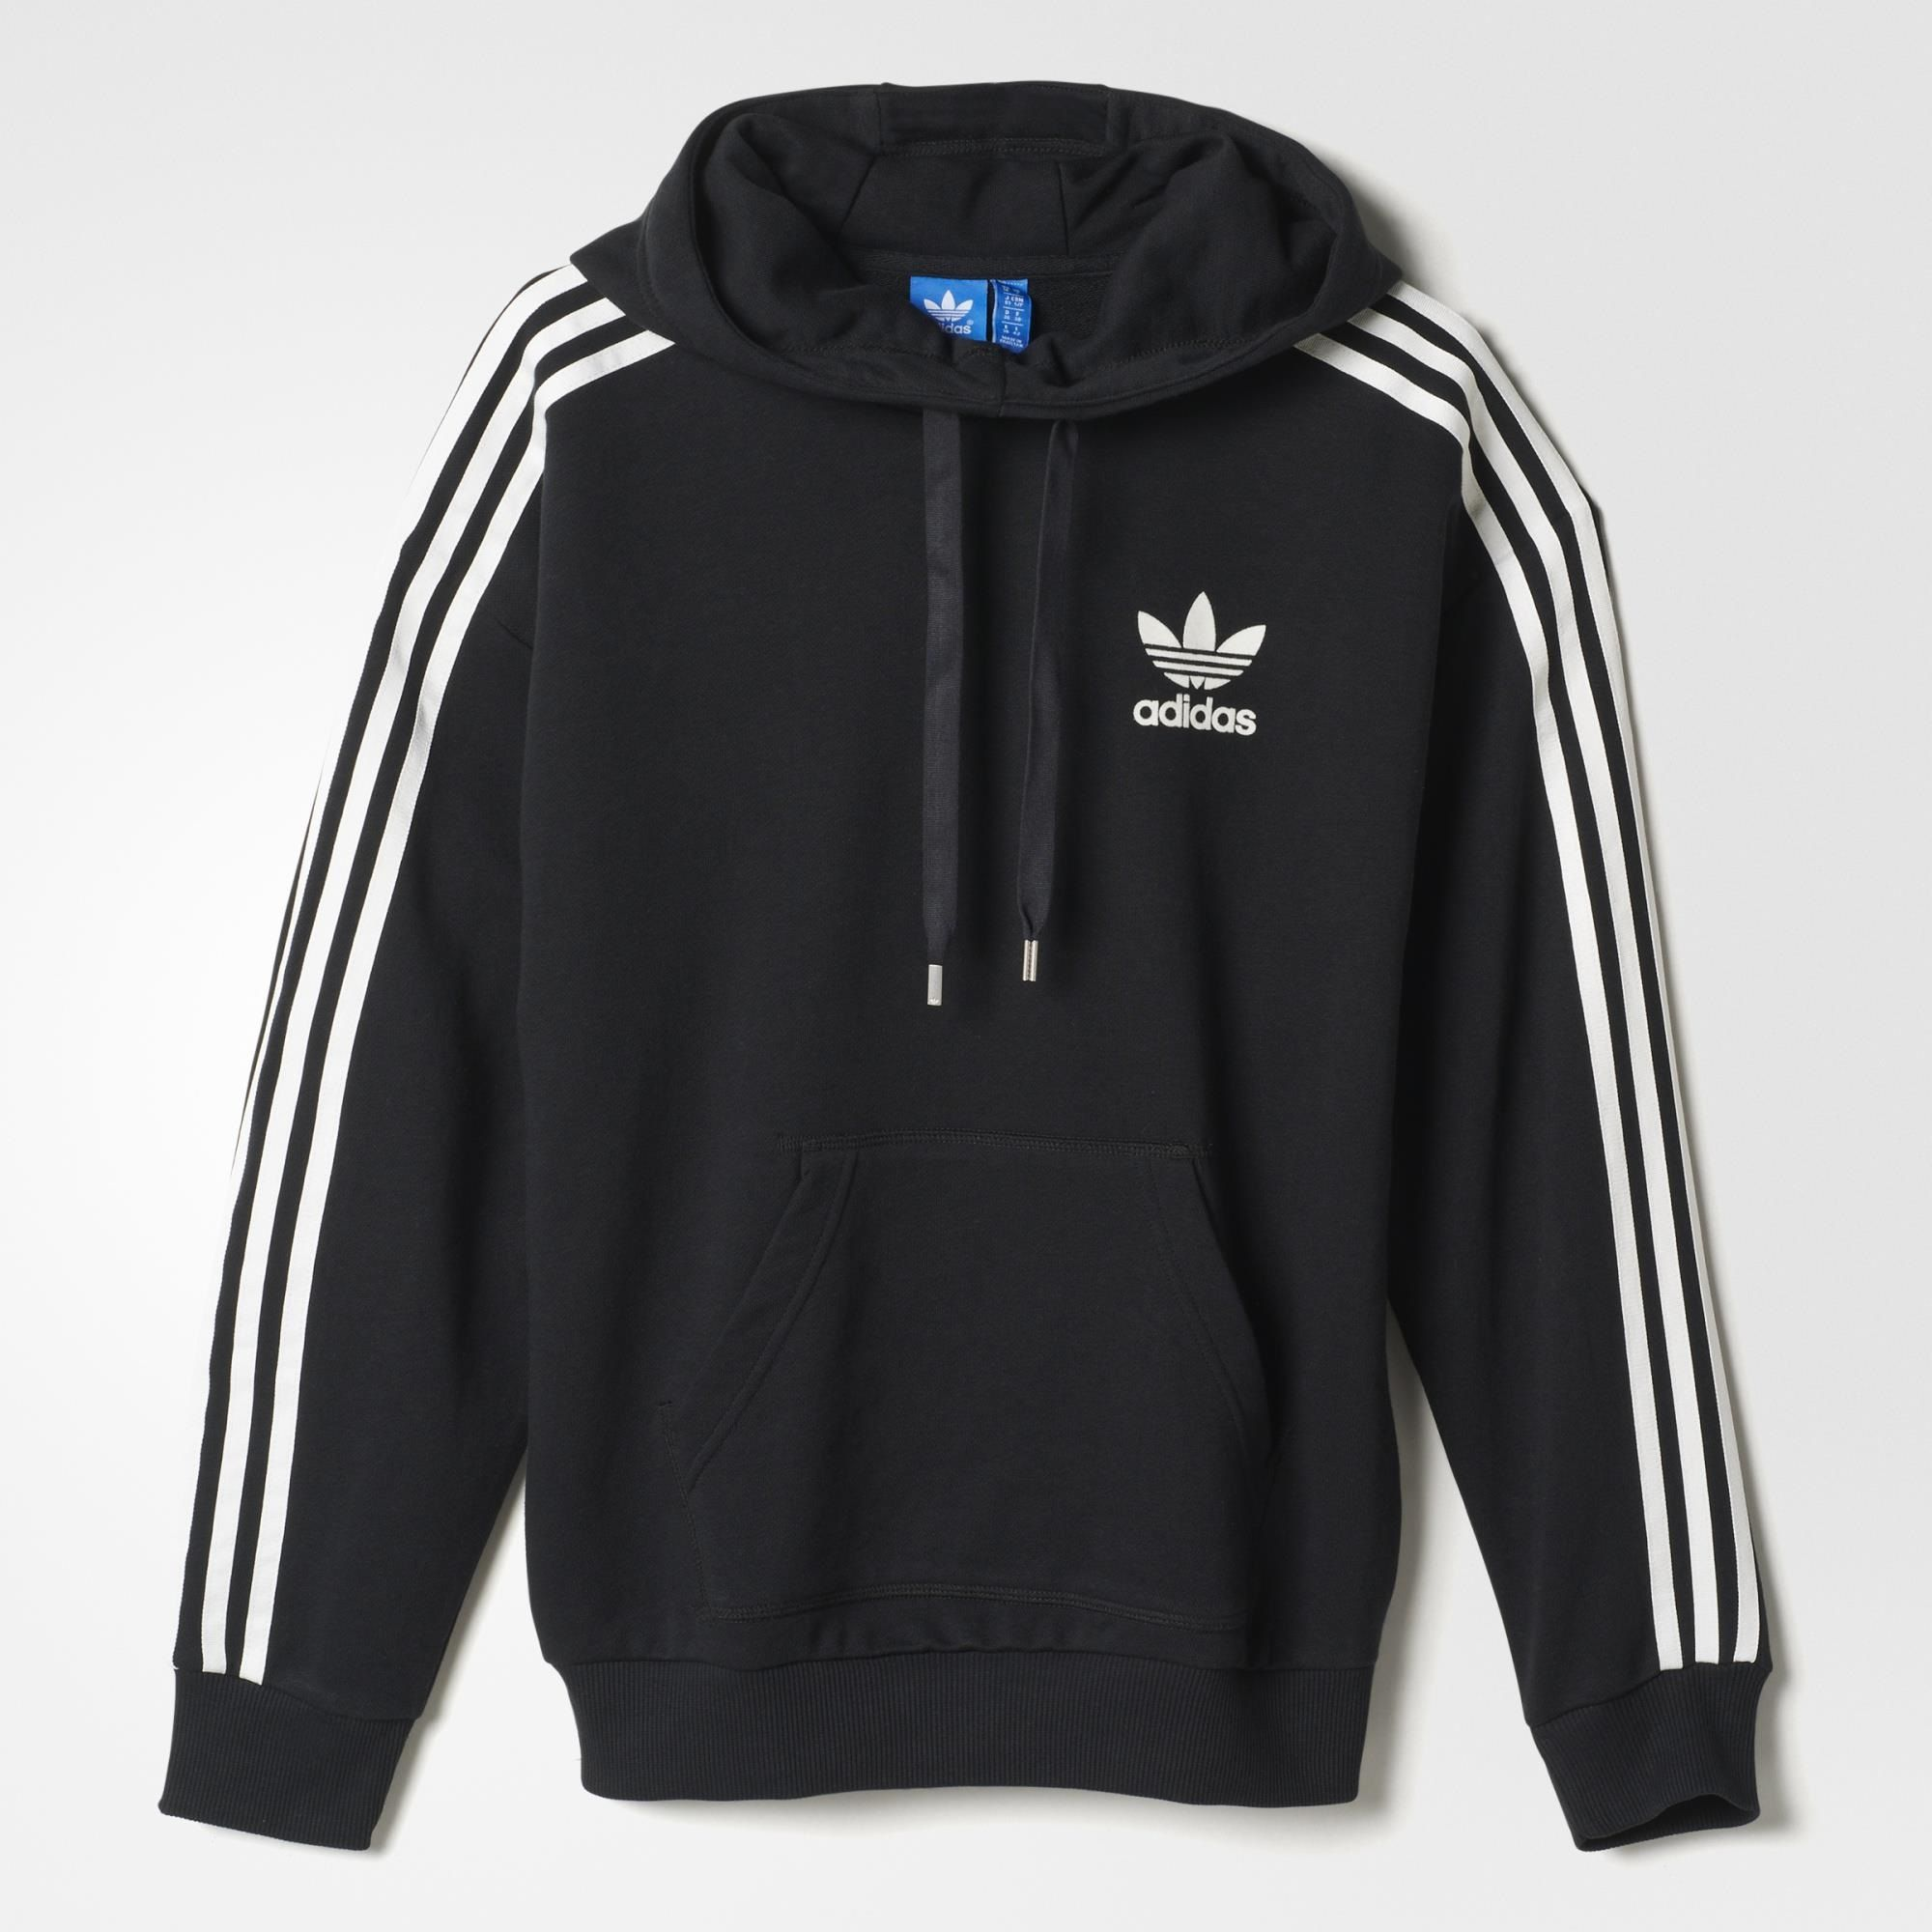 adidas 3-Stripes Hoodie - Black | adidas US | Trendy ...